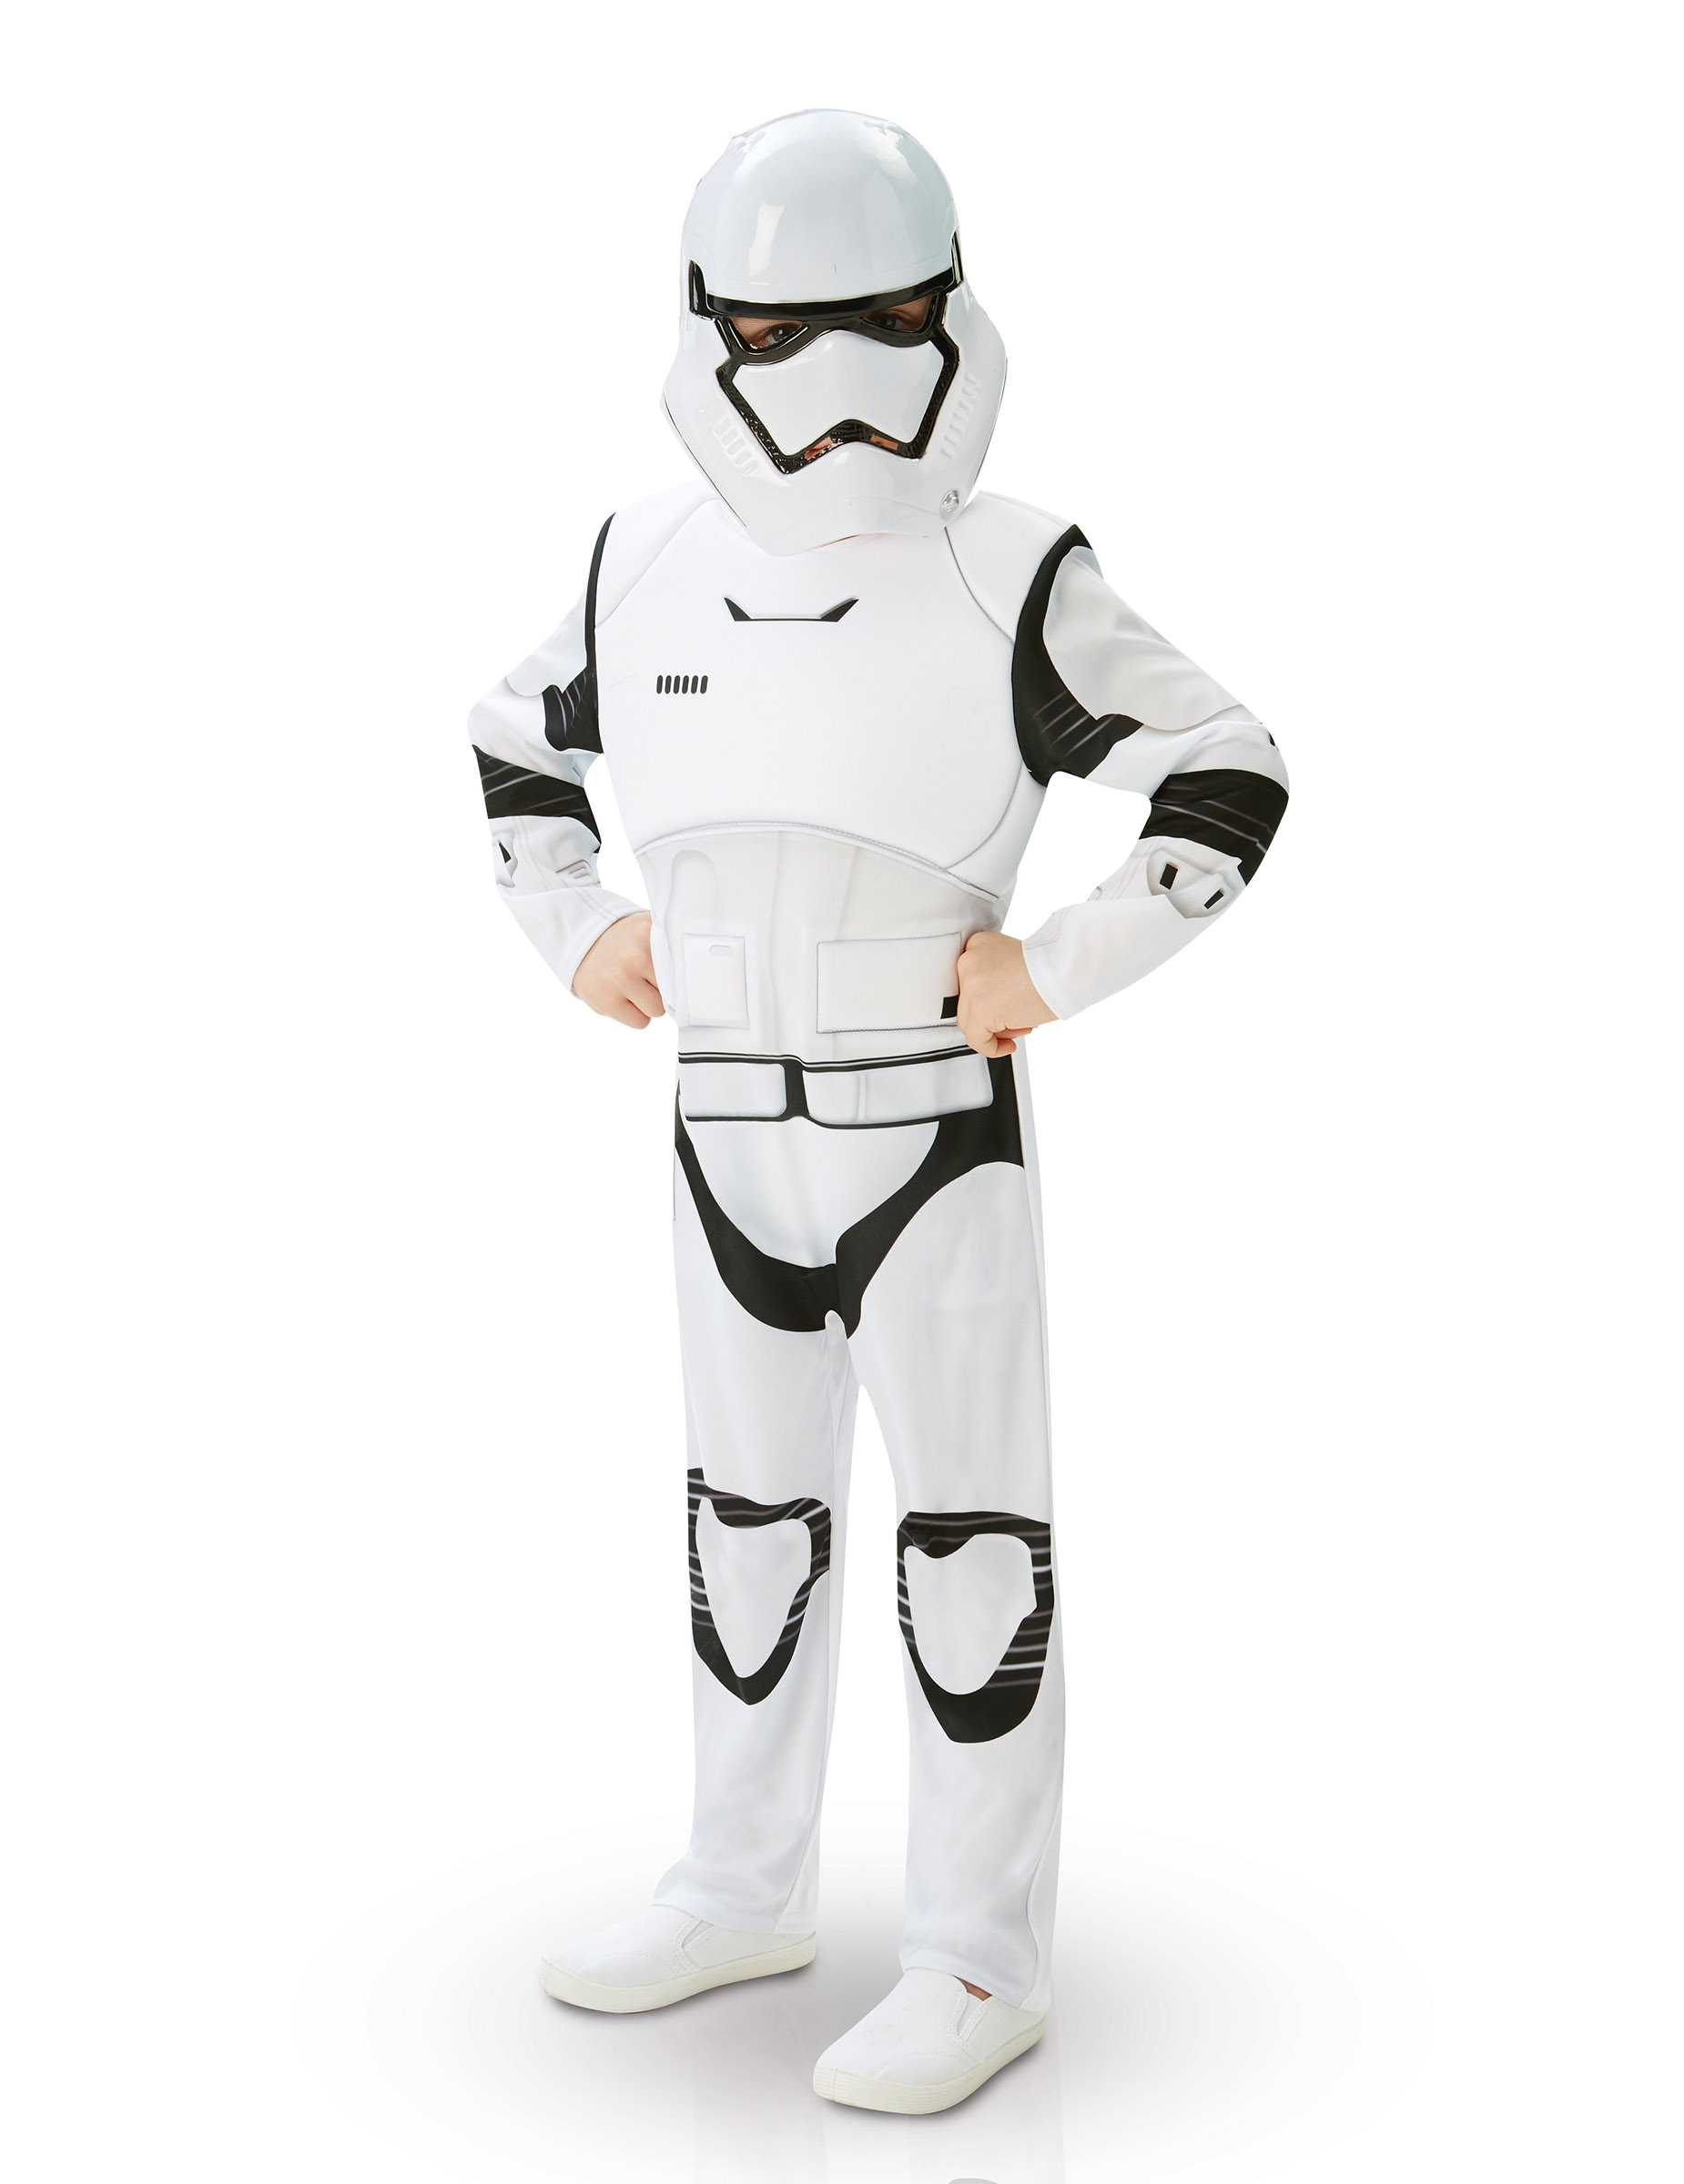 d guisement stormtrooper officielle pas cher d. Black Bedroom Furniture Sets. Home Design Ideas